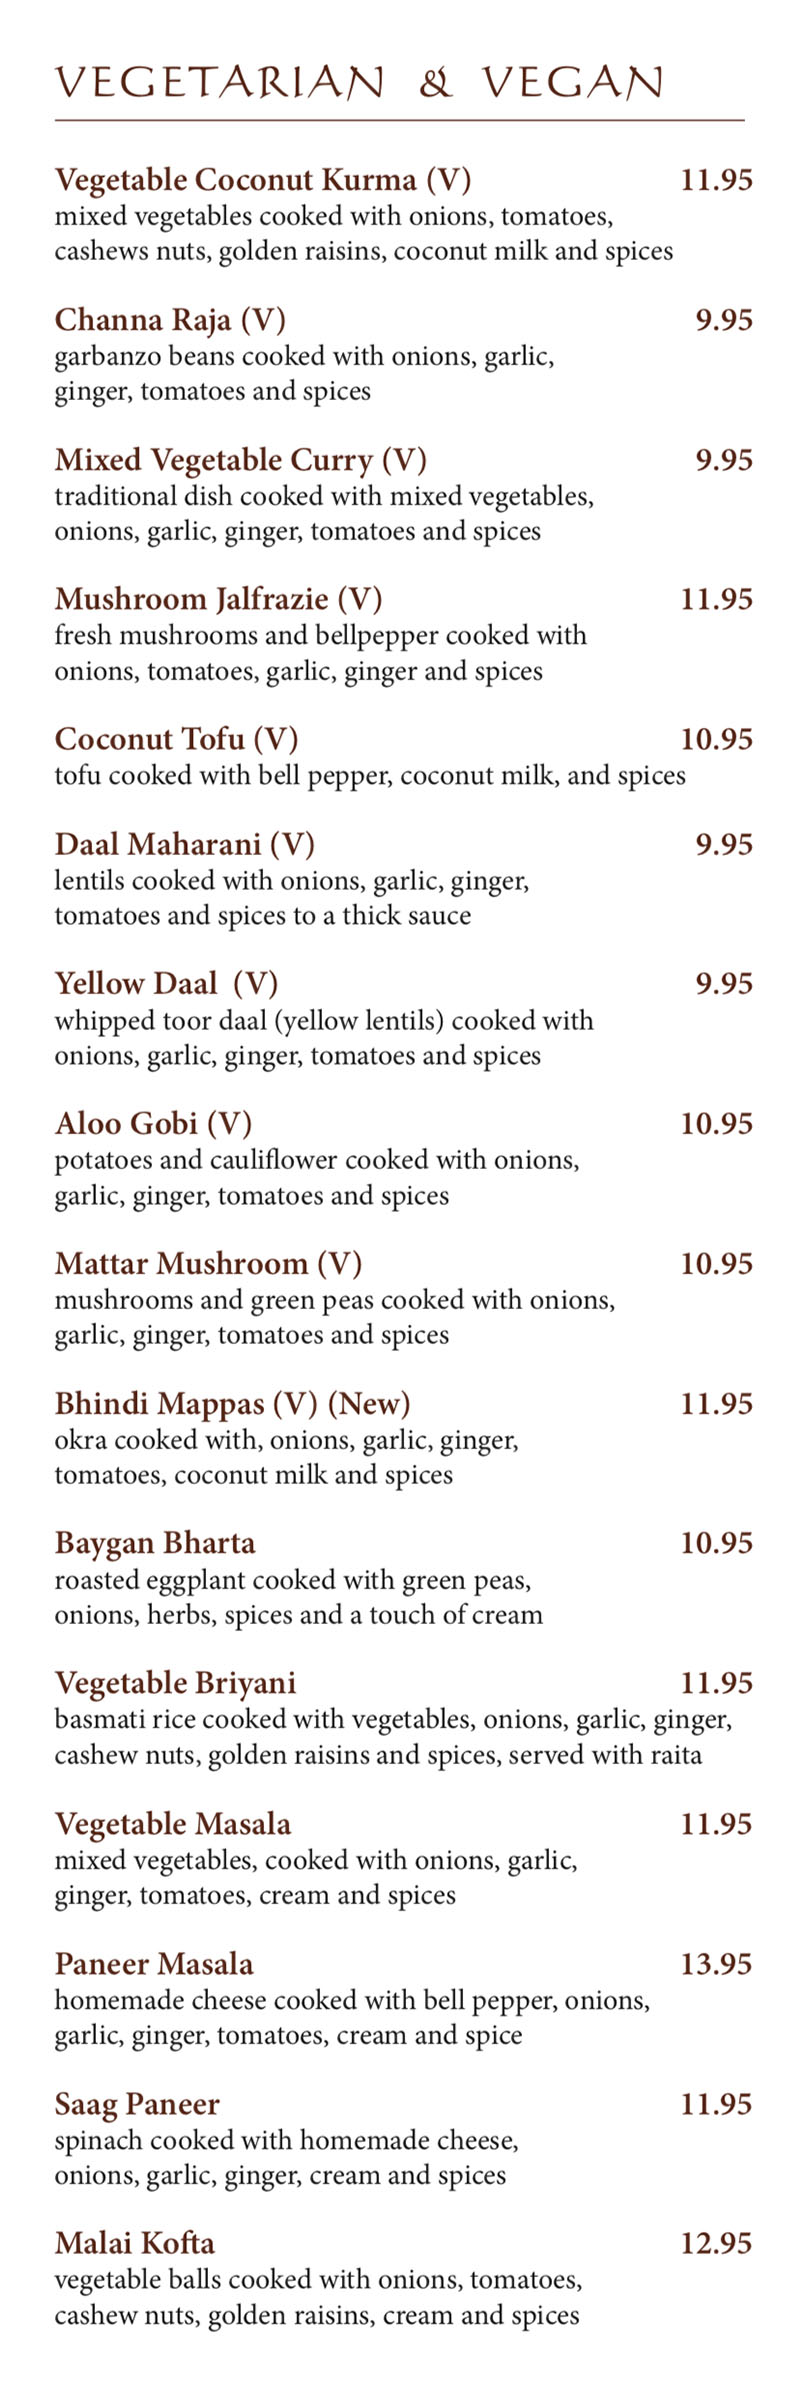 Bombay House menu - vegetarian and vegan